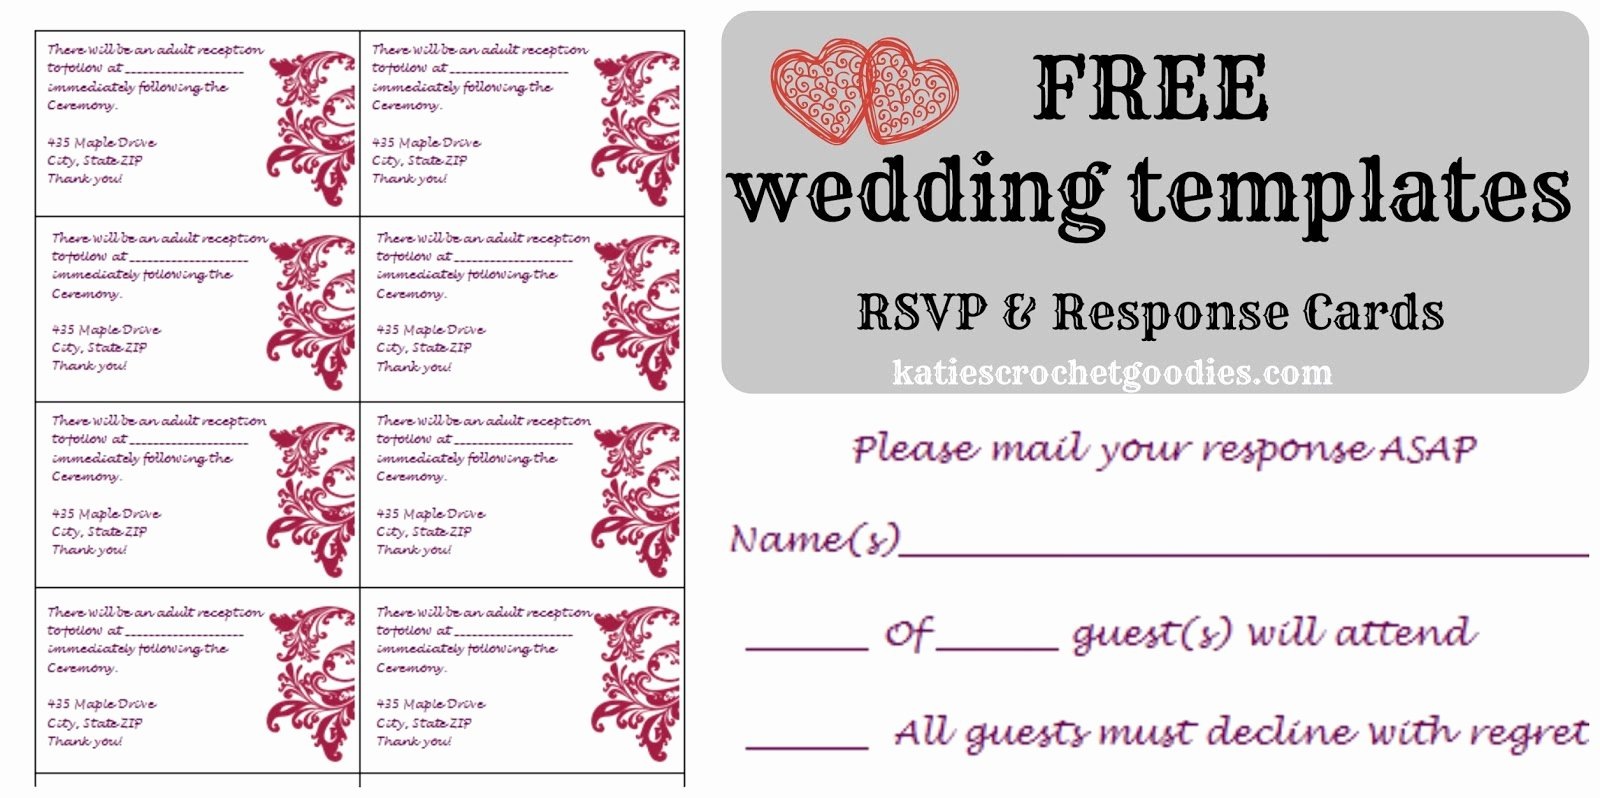 Reception Cards Template Free Beautiful Free Wedding Templates Rsvp & Reception Cards Katie S